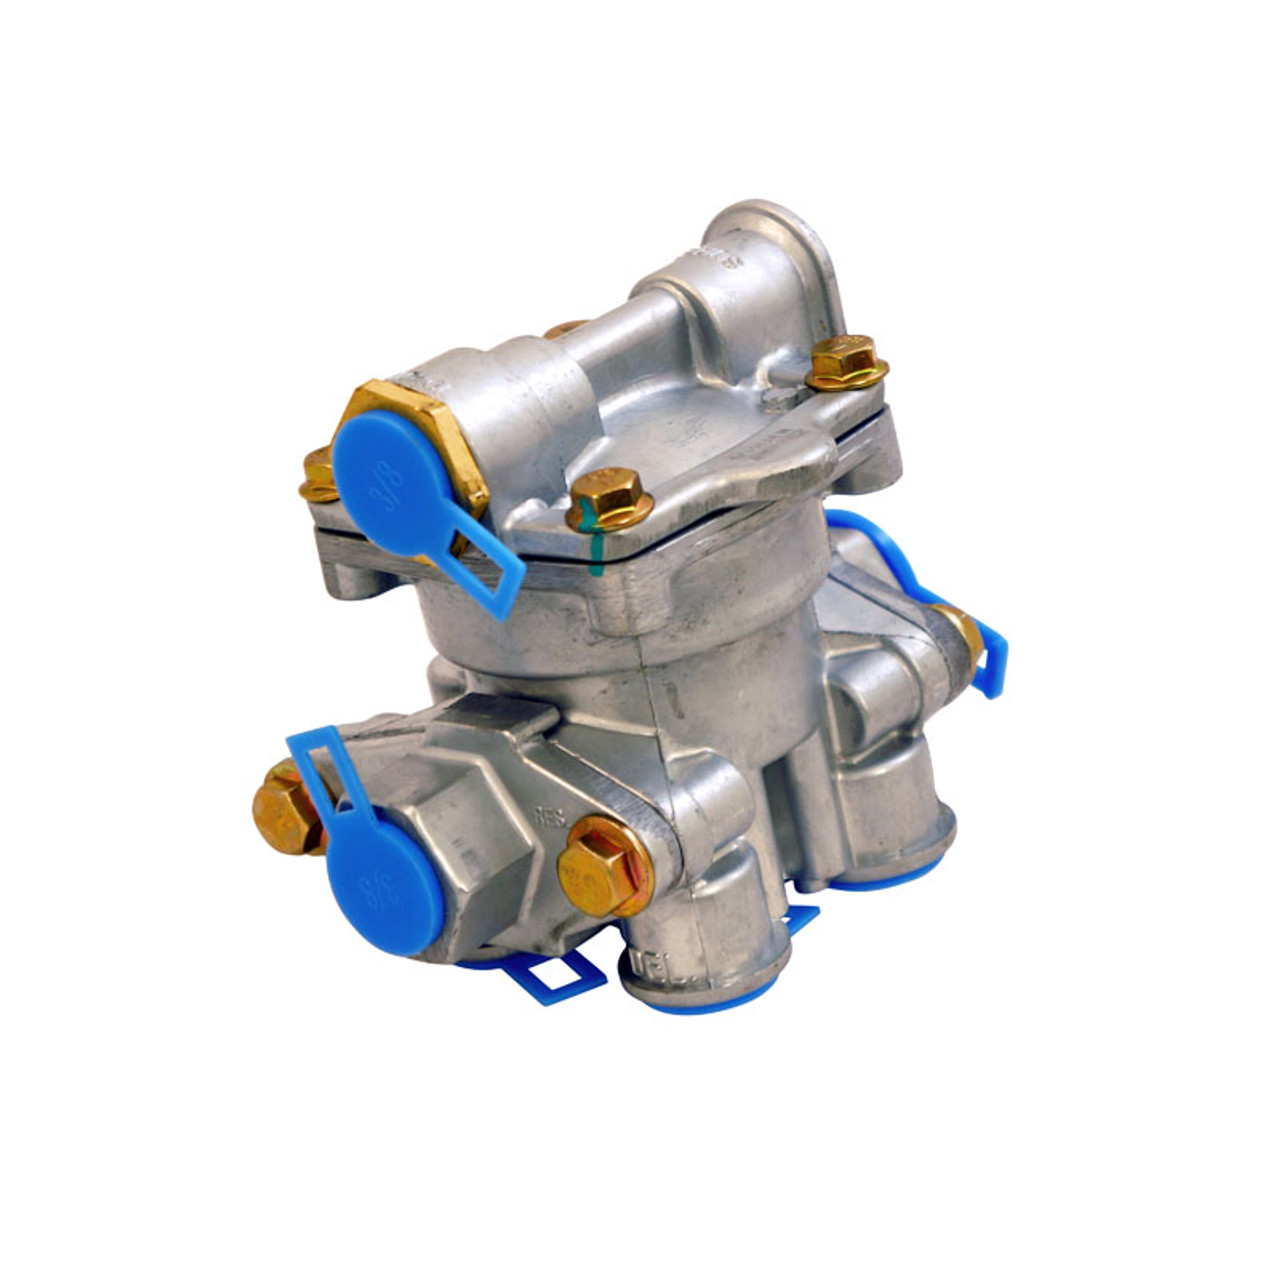 Sealco / Spring Brake Control Valve - Supply & Control Ports Inline with Reservoir Ports / 110171